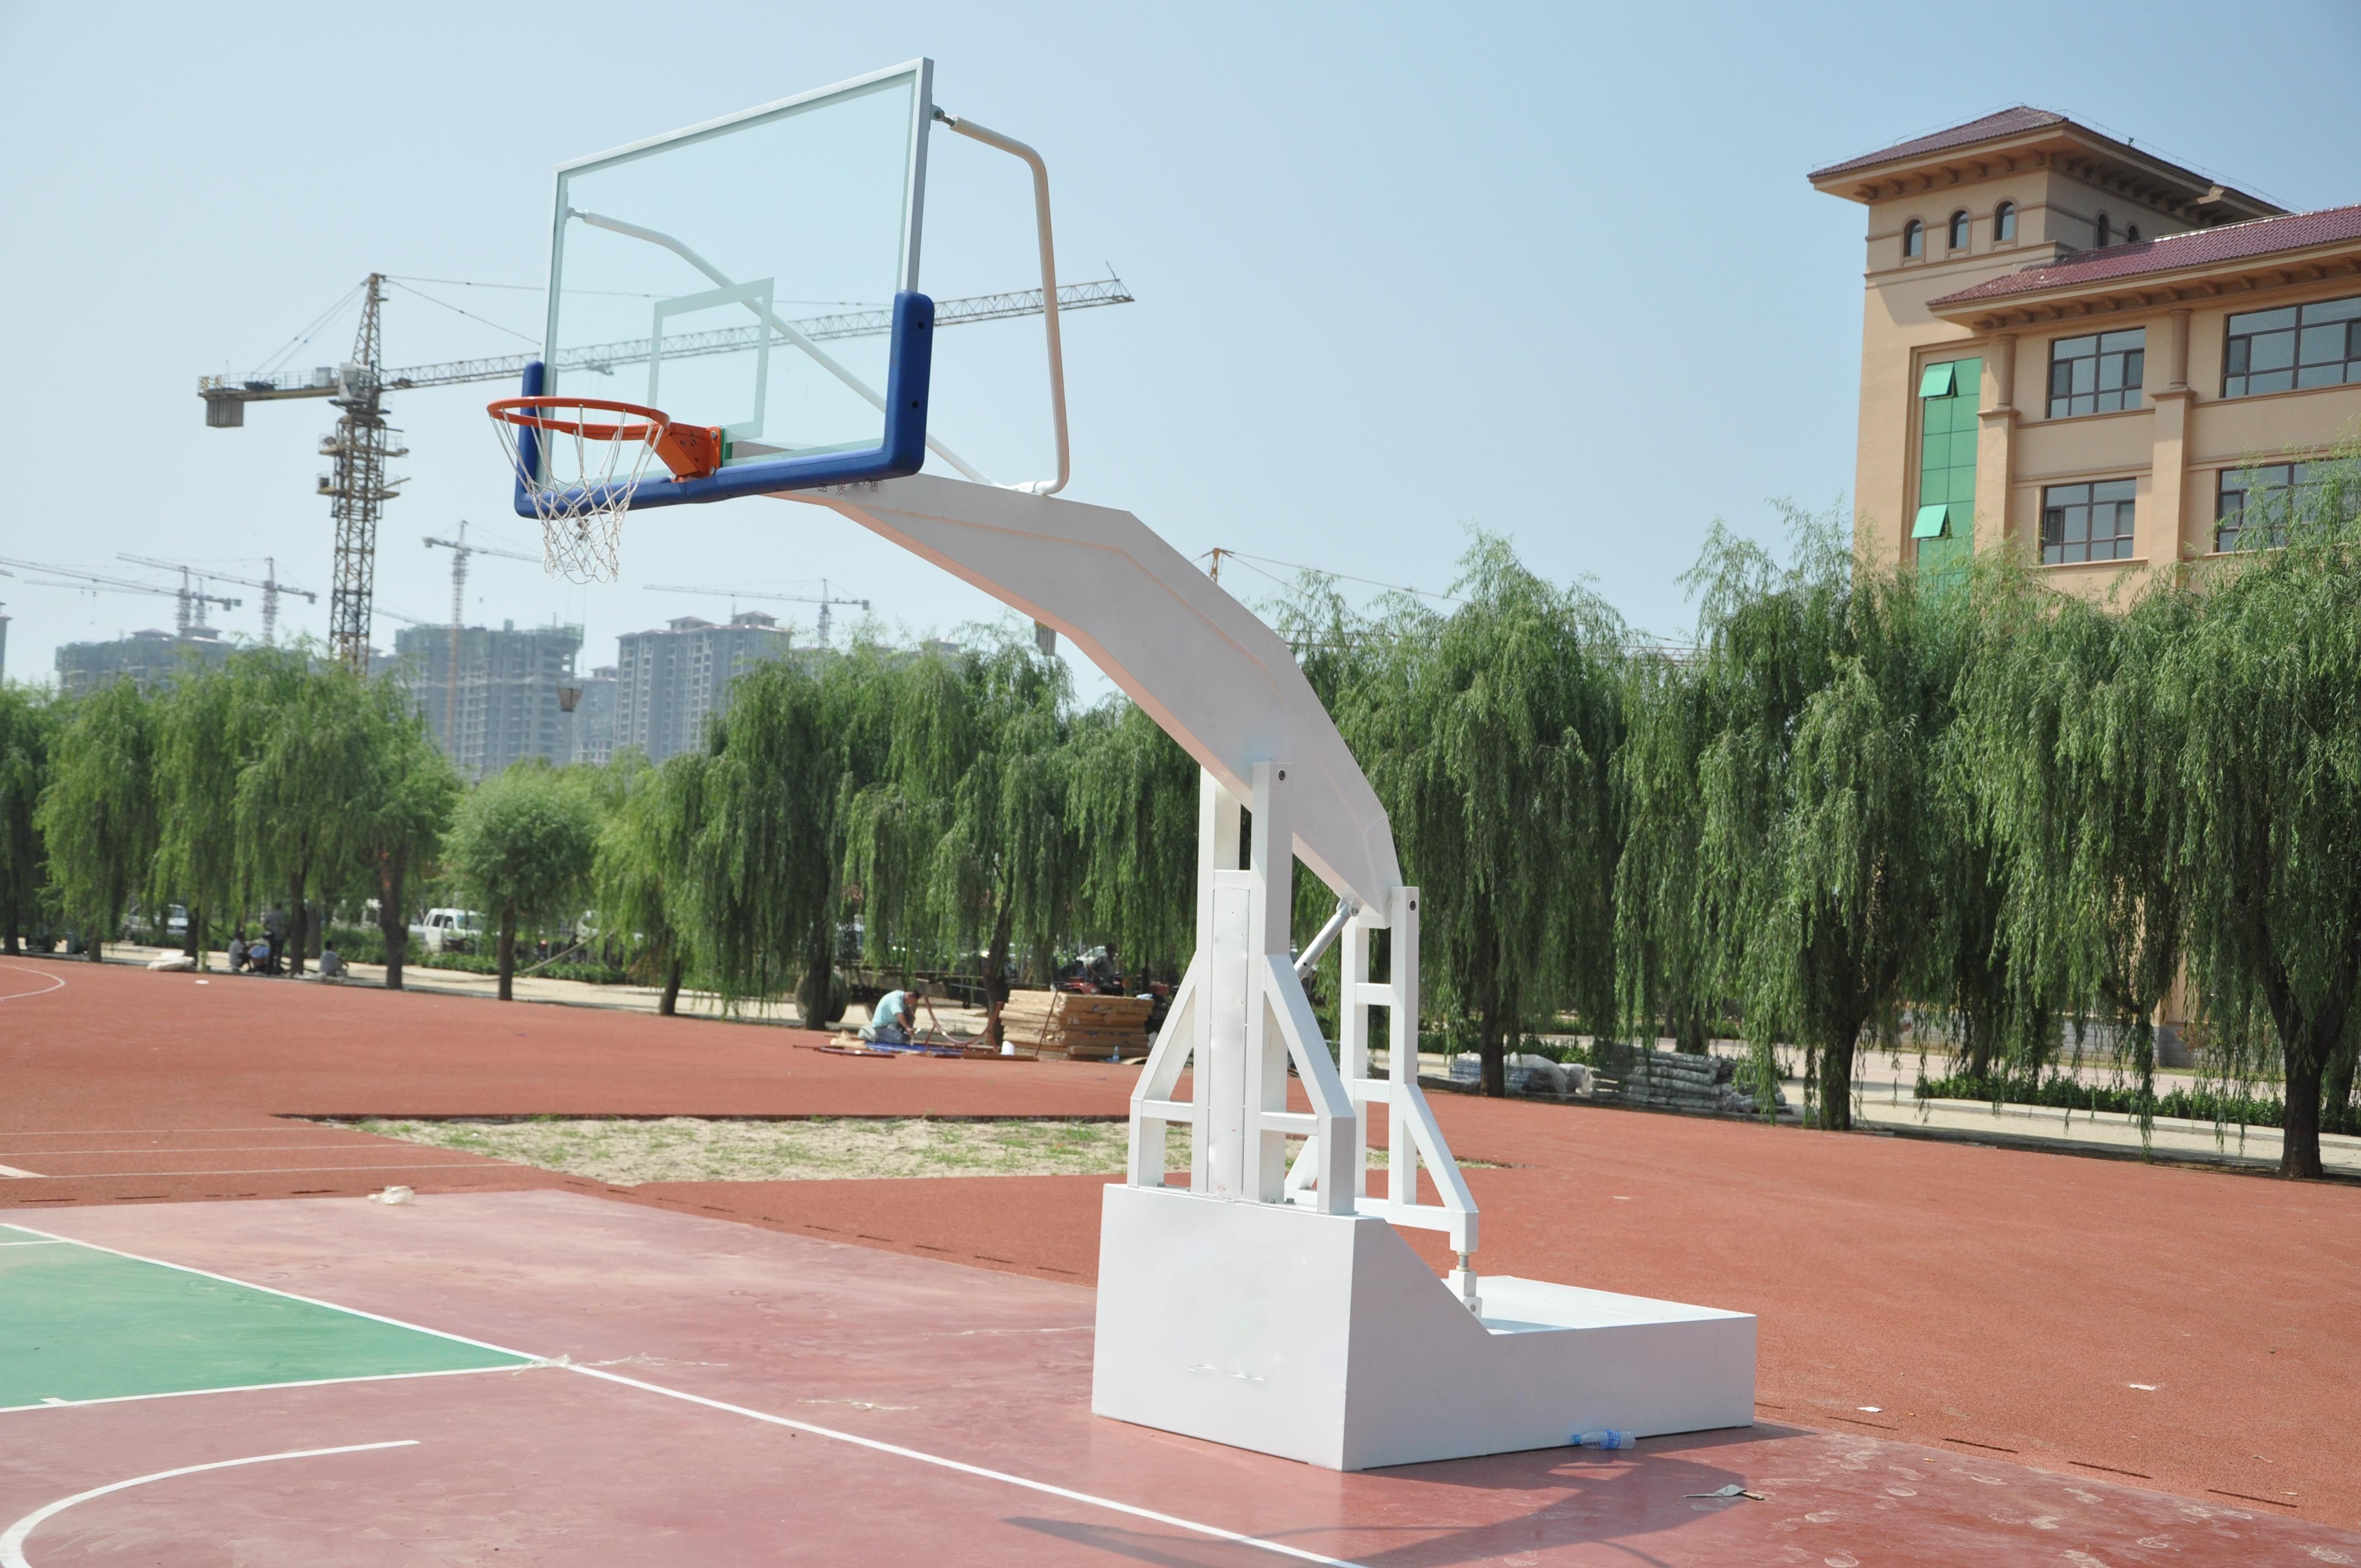 Electric Hydraulic Folding Basketball Hoop Goal Easy To Move With Wheel System Under The Base S Outdoor Basketball Court Basketball Equipment Basketball Hoop